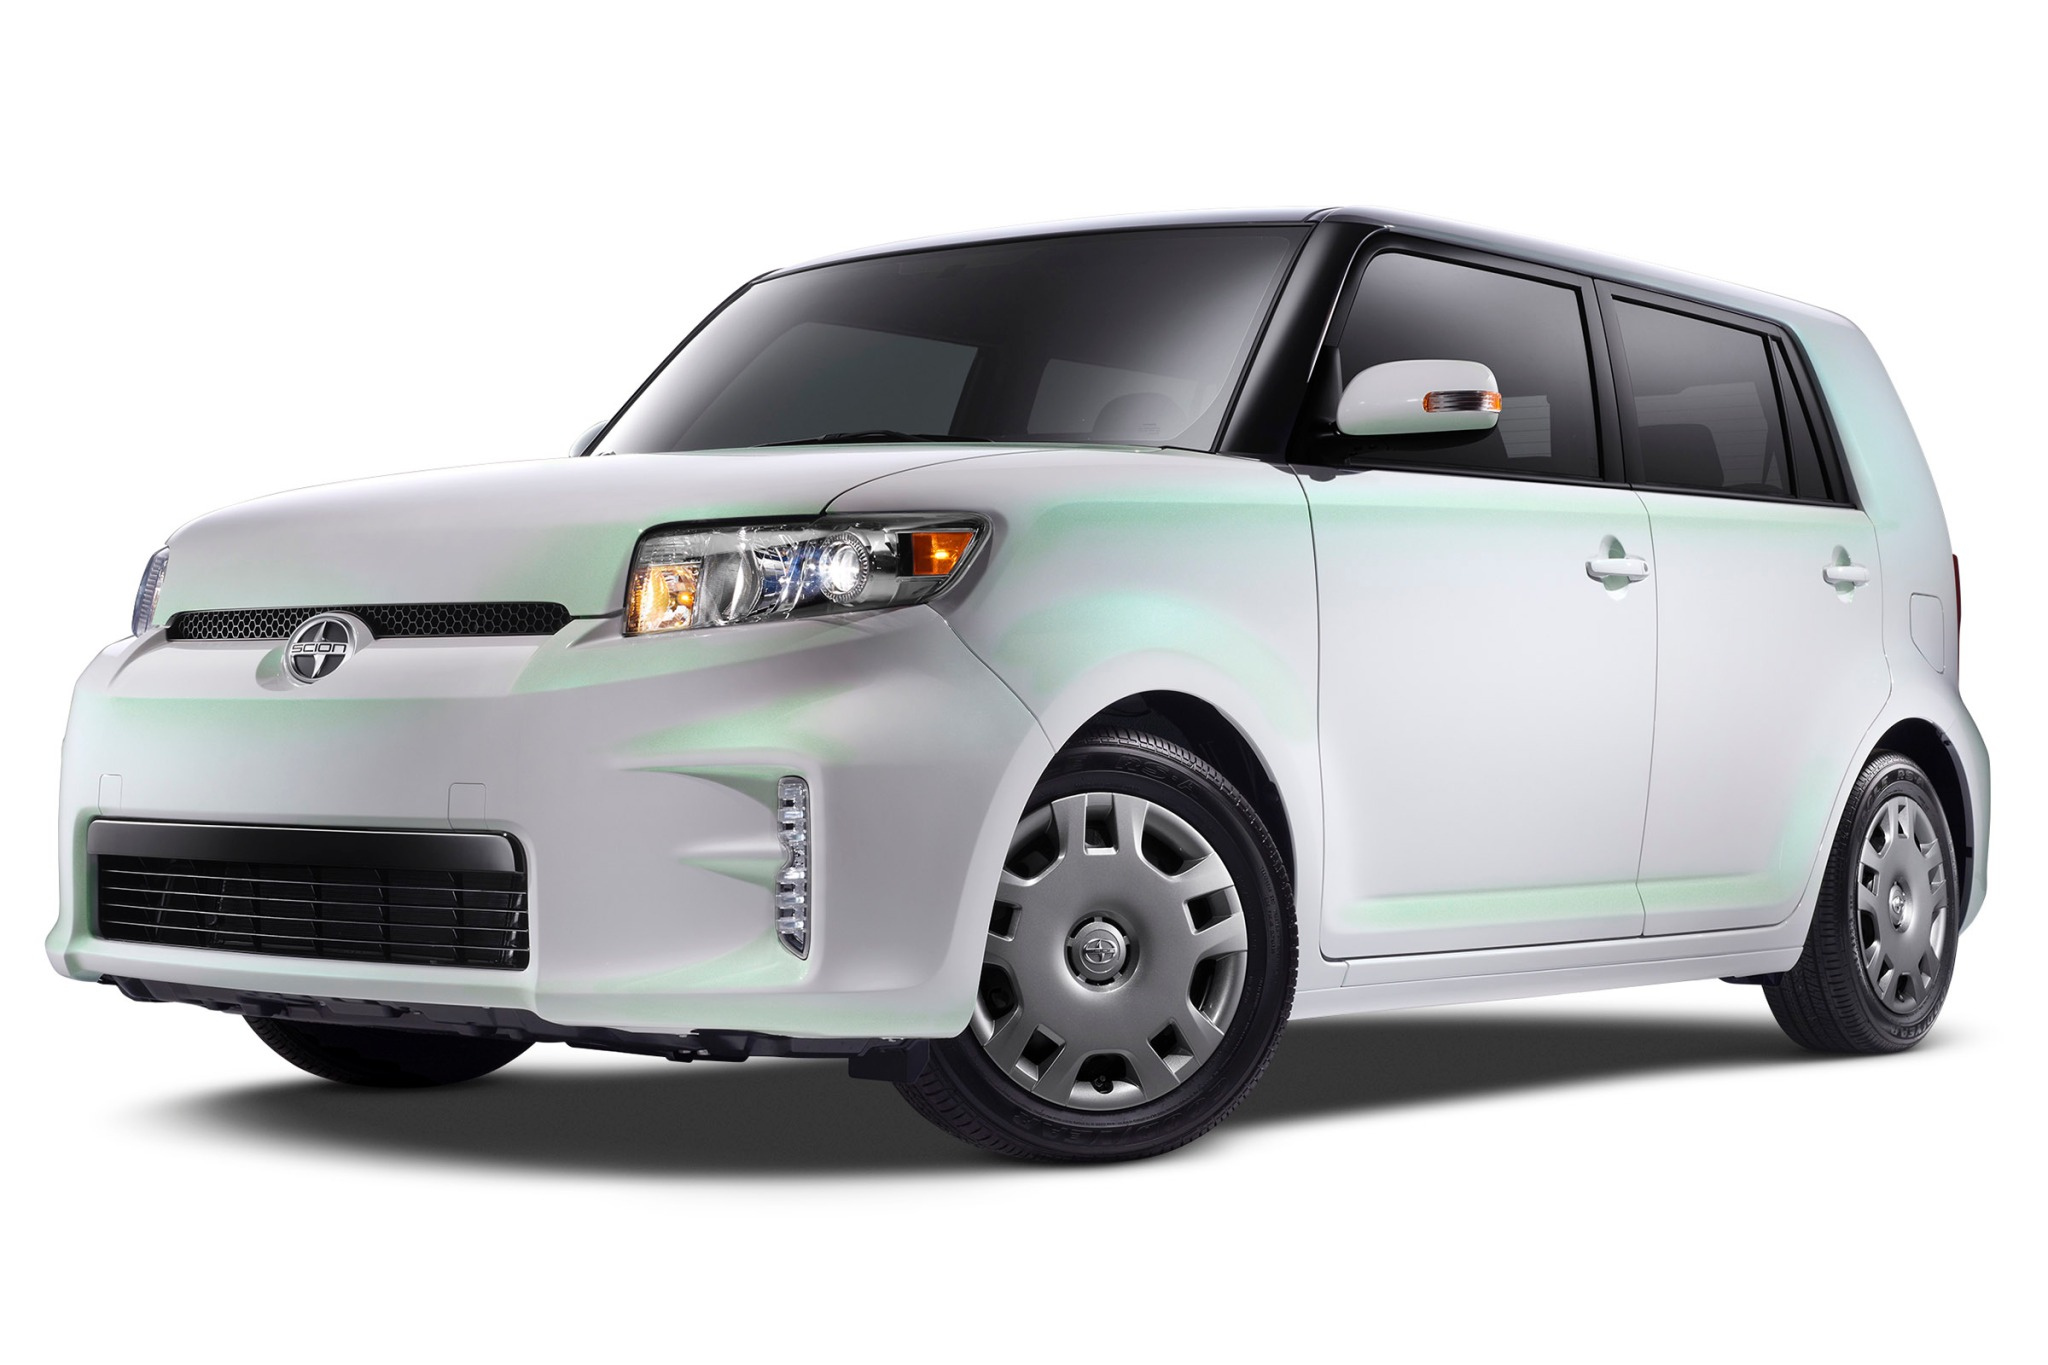 2014 scion xb wagon release series 100 fq oem 1 2048